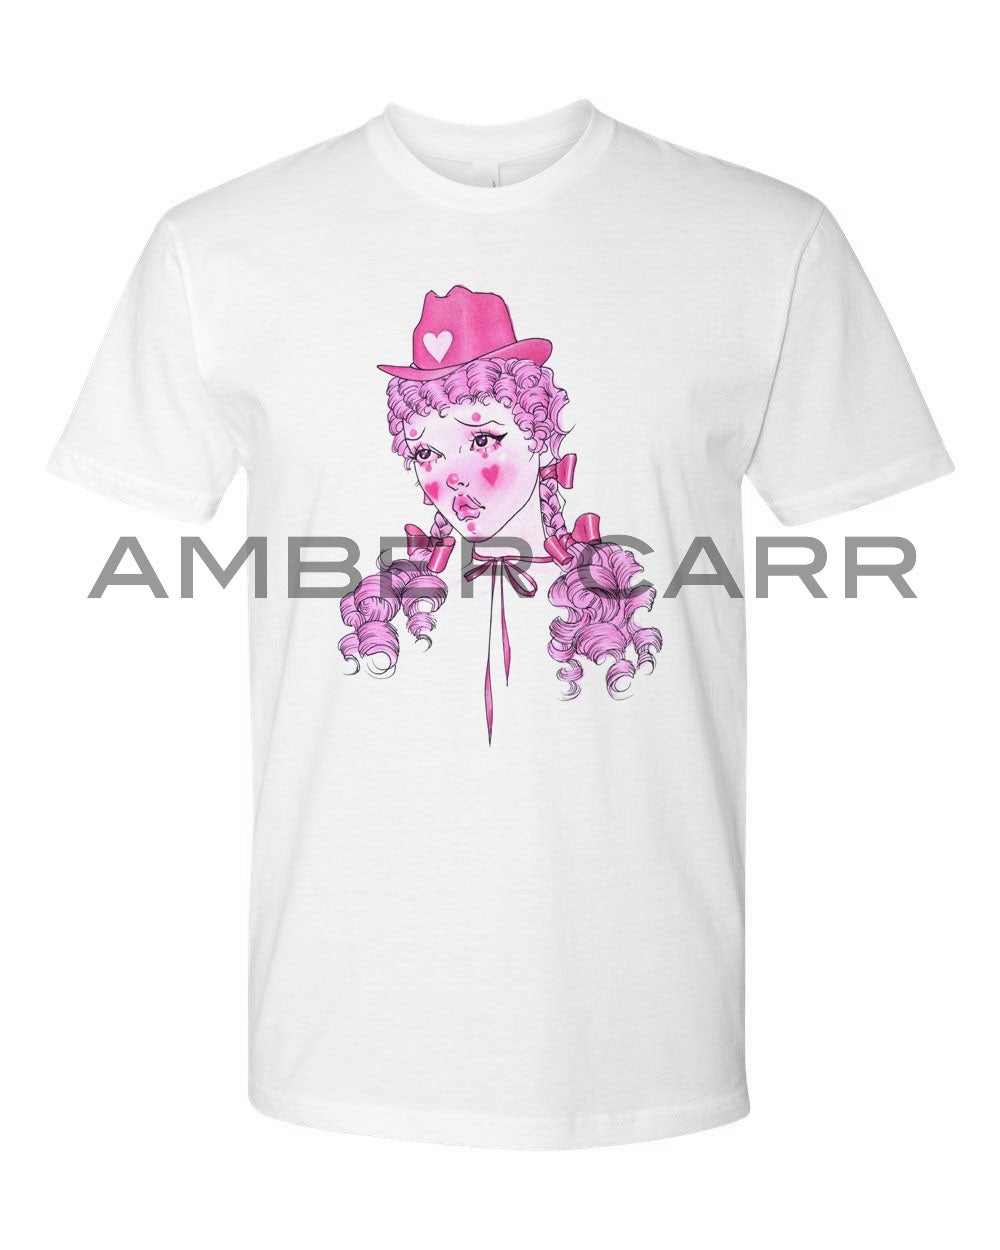 Image of Cowgirl Clown T-shirt - Unisex - 100% cotton